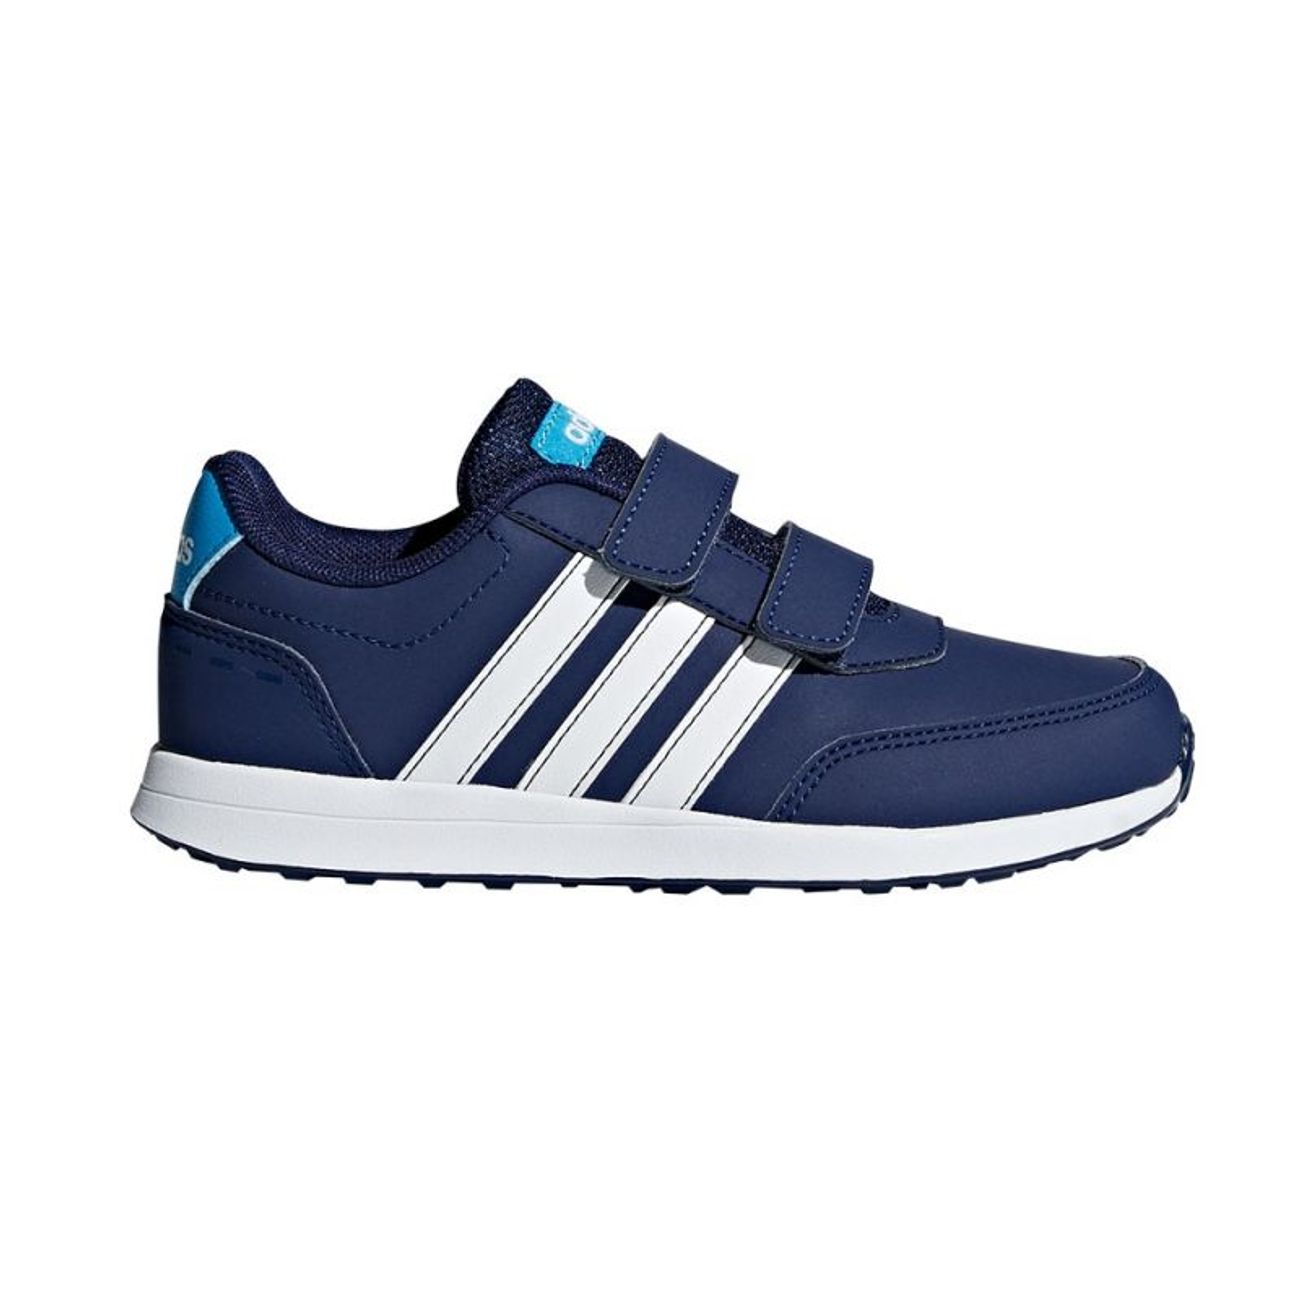 Adulte Bleu Junior Cmf Switch Adidas Vs F35696 Padel 2 Marine dWCBoeQxr